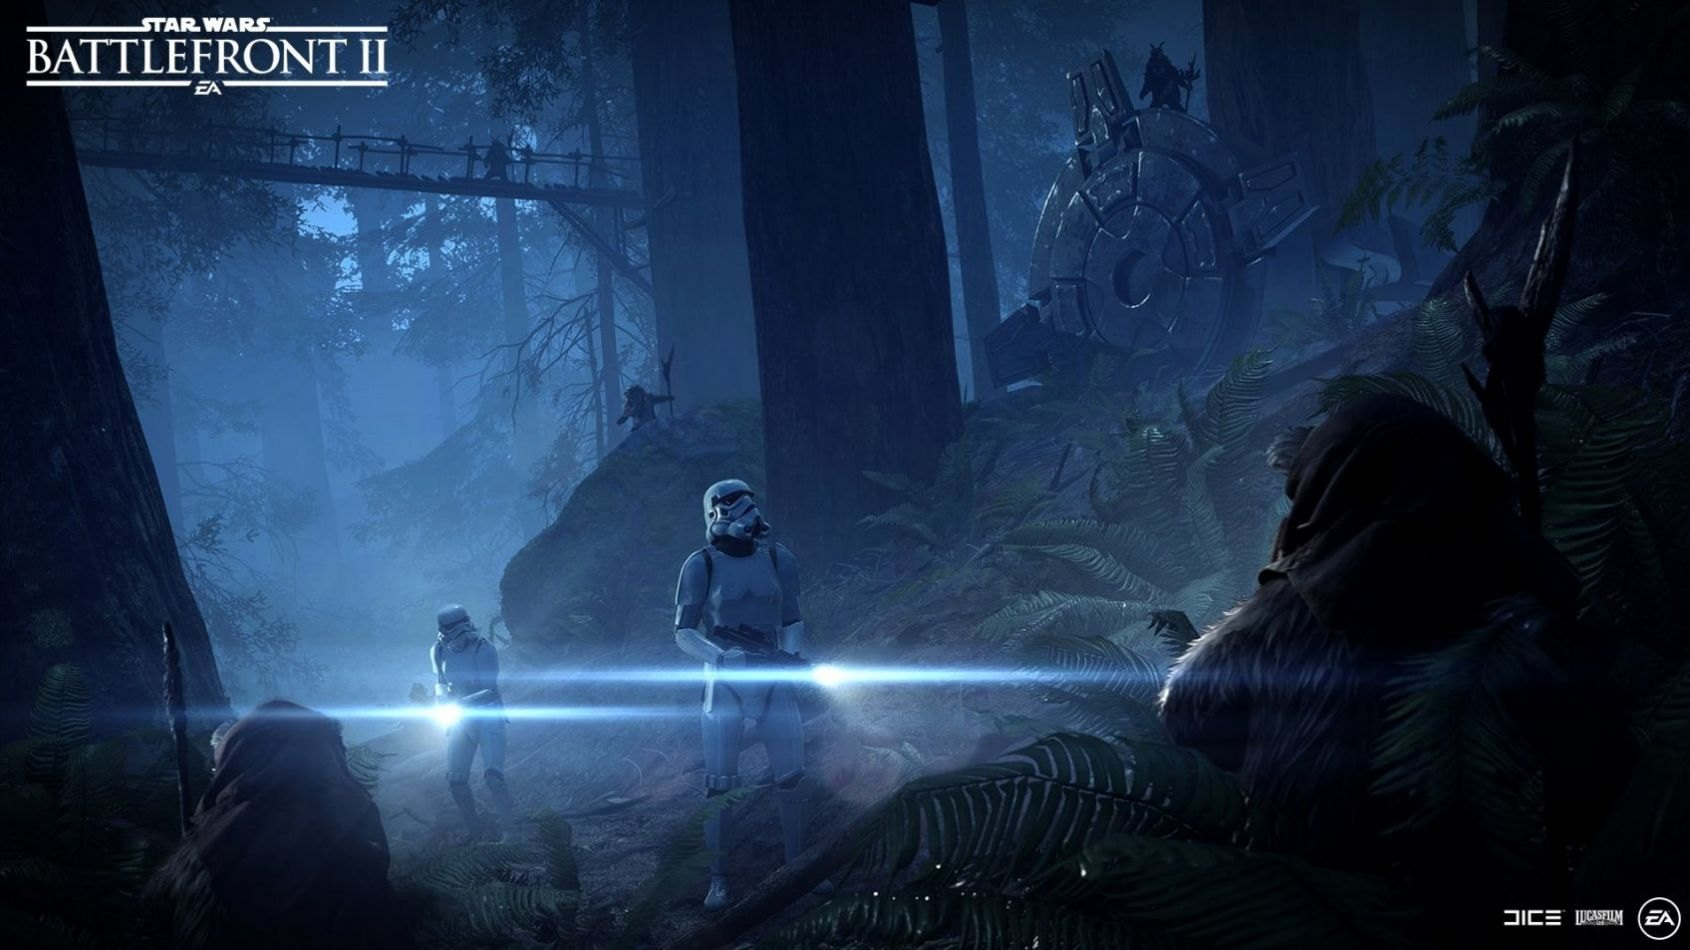 Star Wars Battlefront II : Les Ewoks arrivent en force